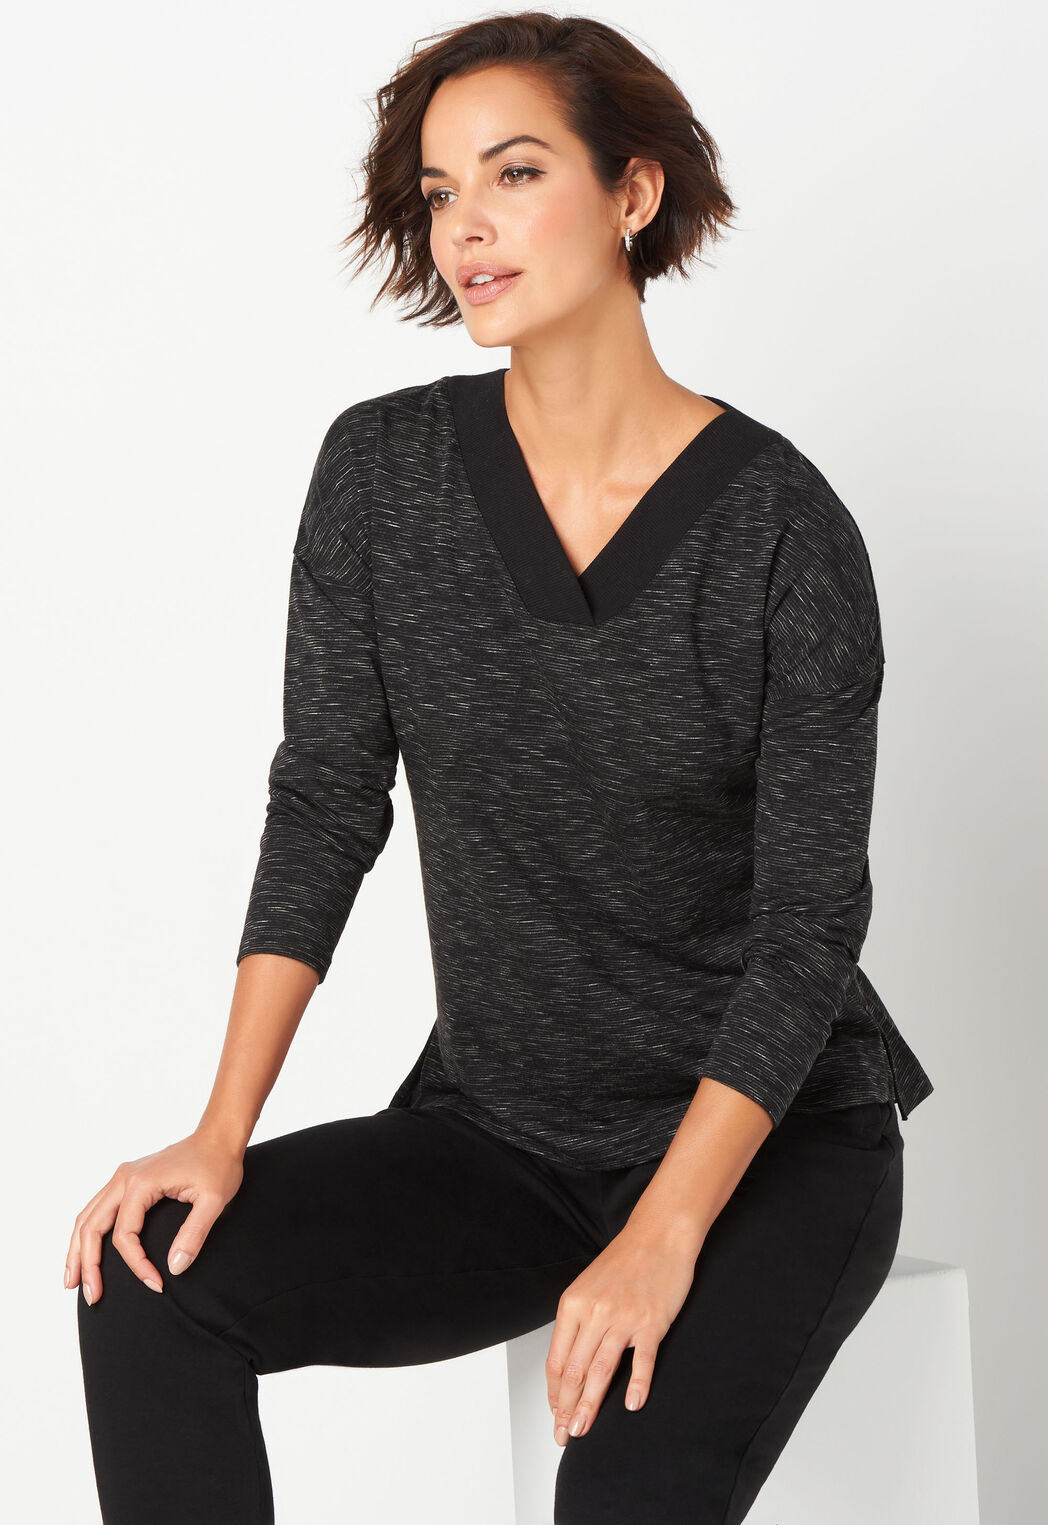 2ad0b18a2ca3a Relaxed Restyled Space Dye V-Neck - CBK Web Store